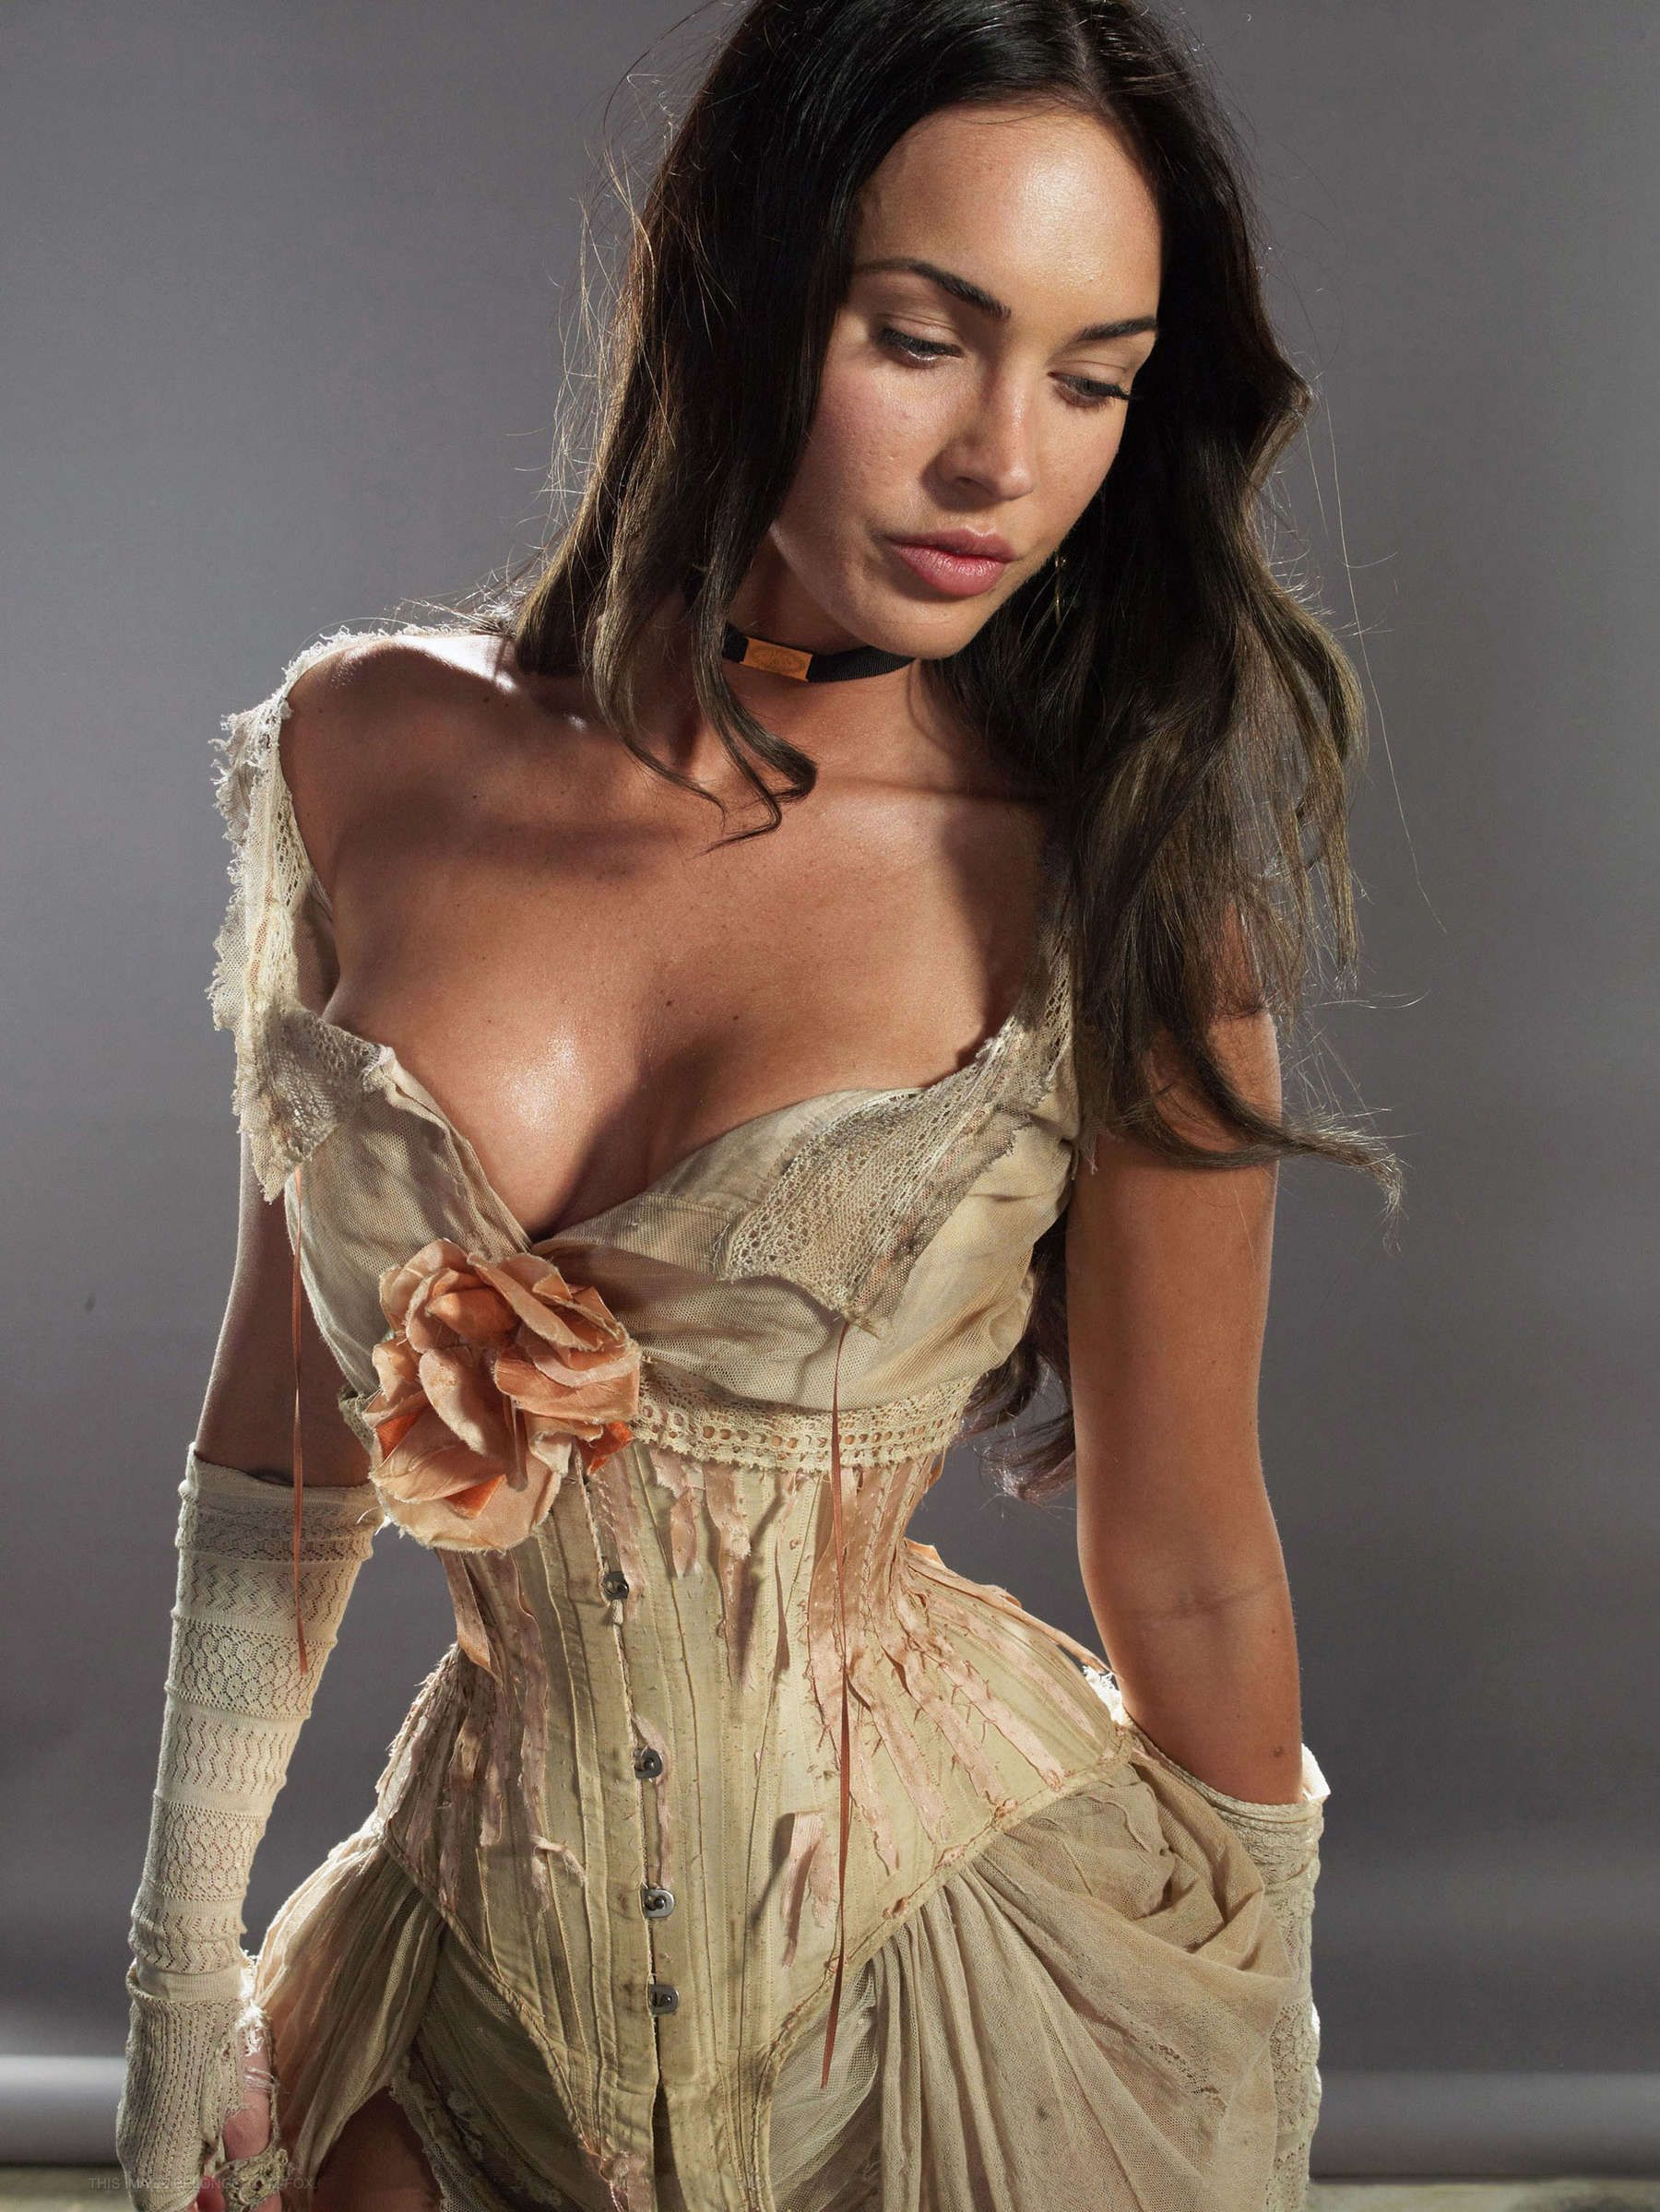 Megan fox hot, Megan fox pictures, Megan fox